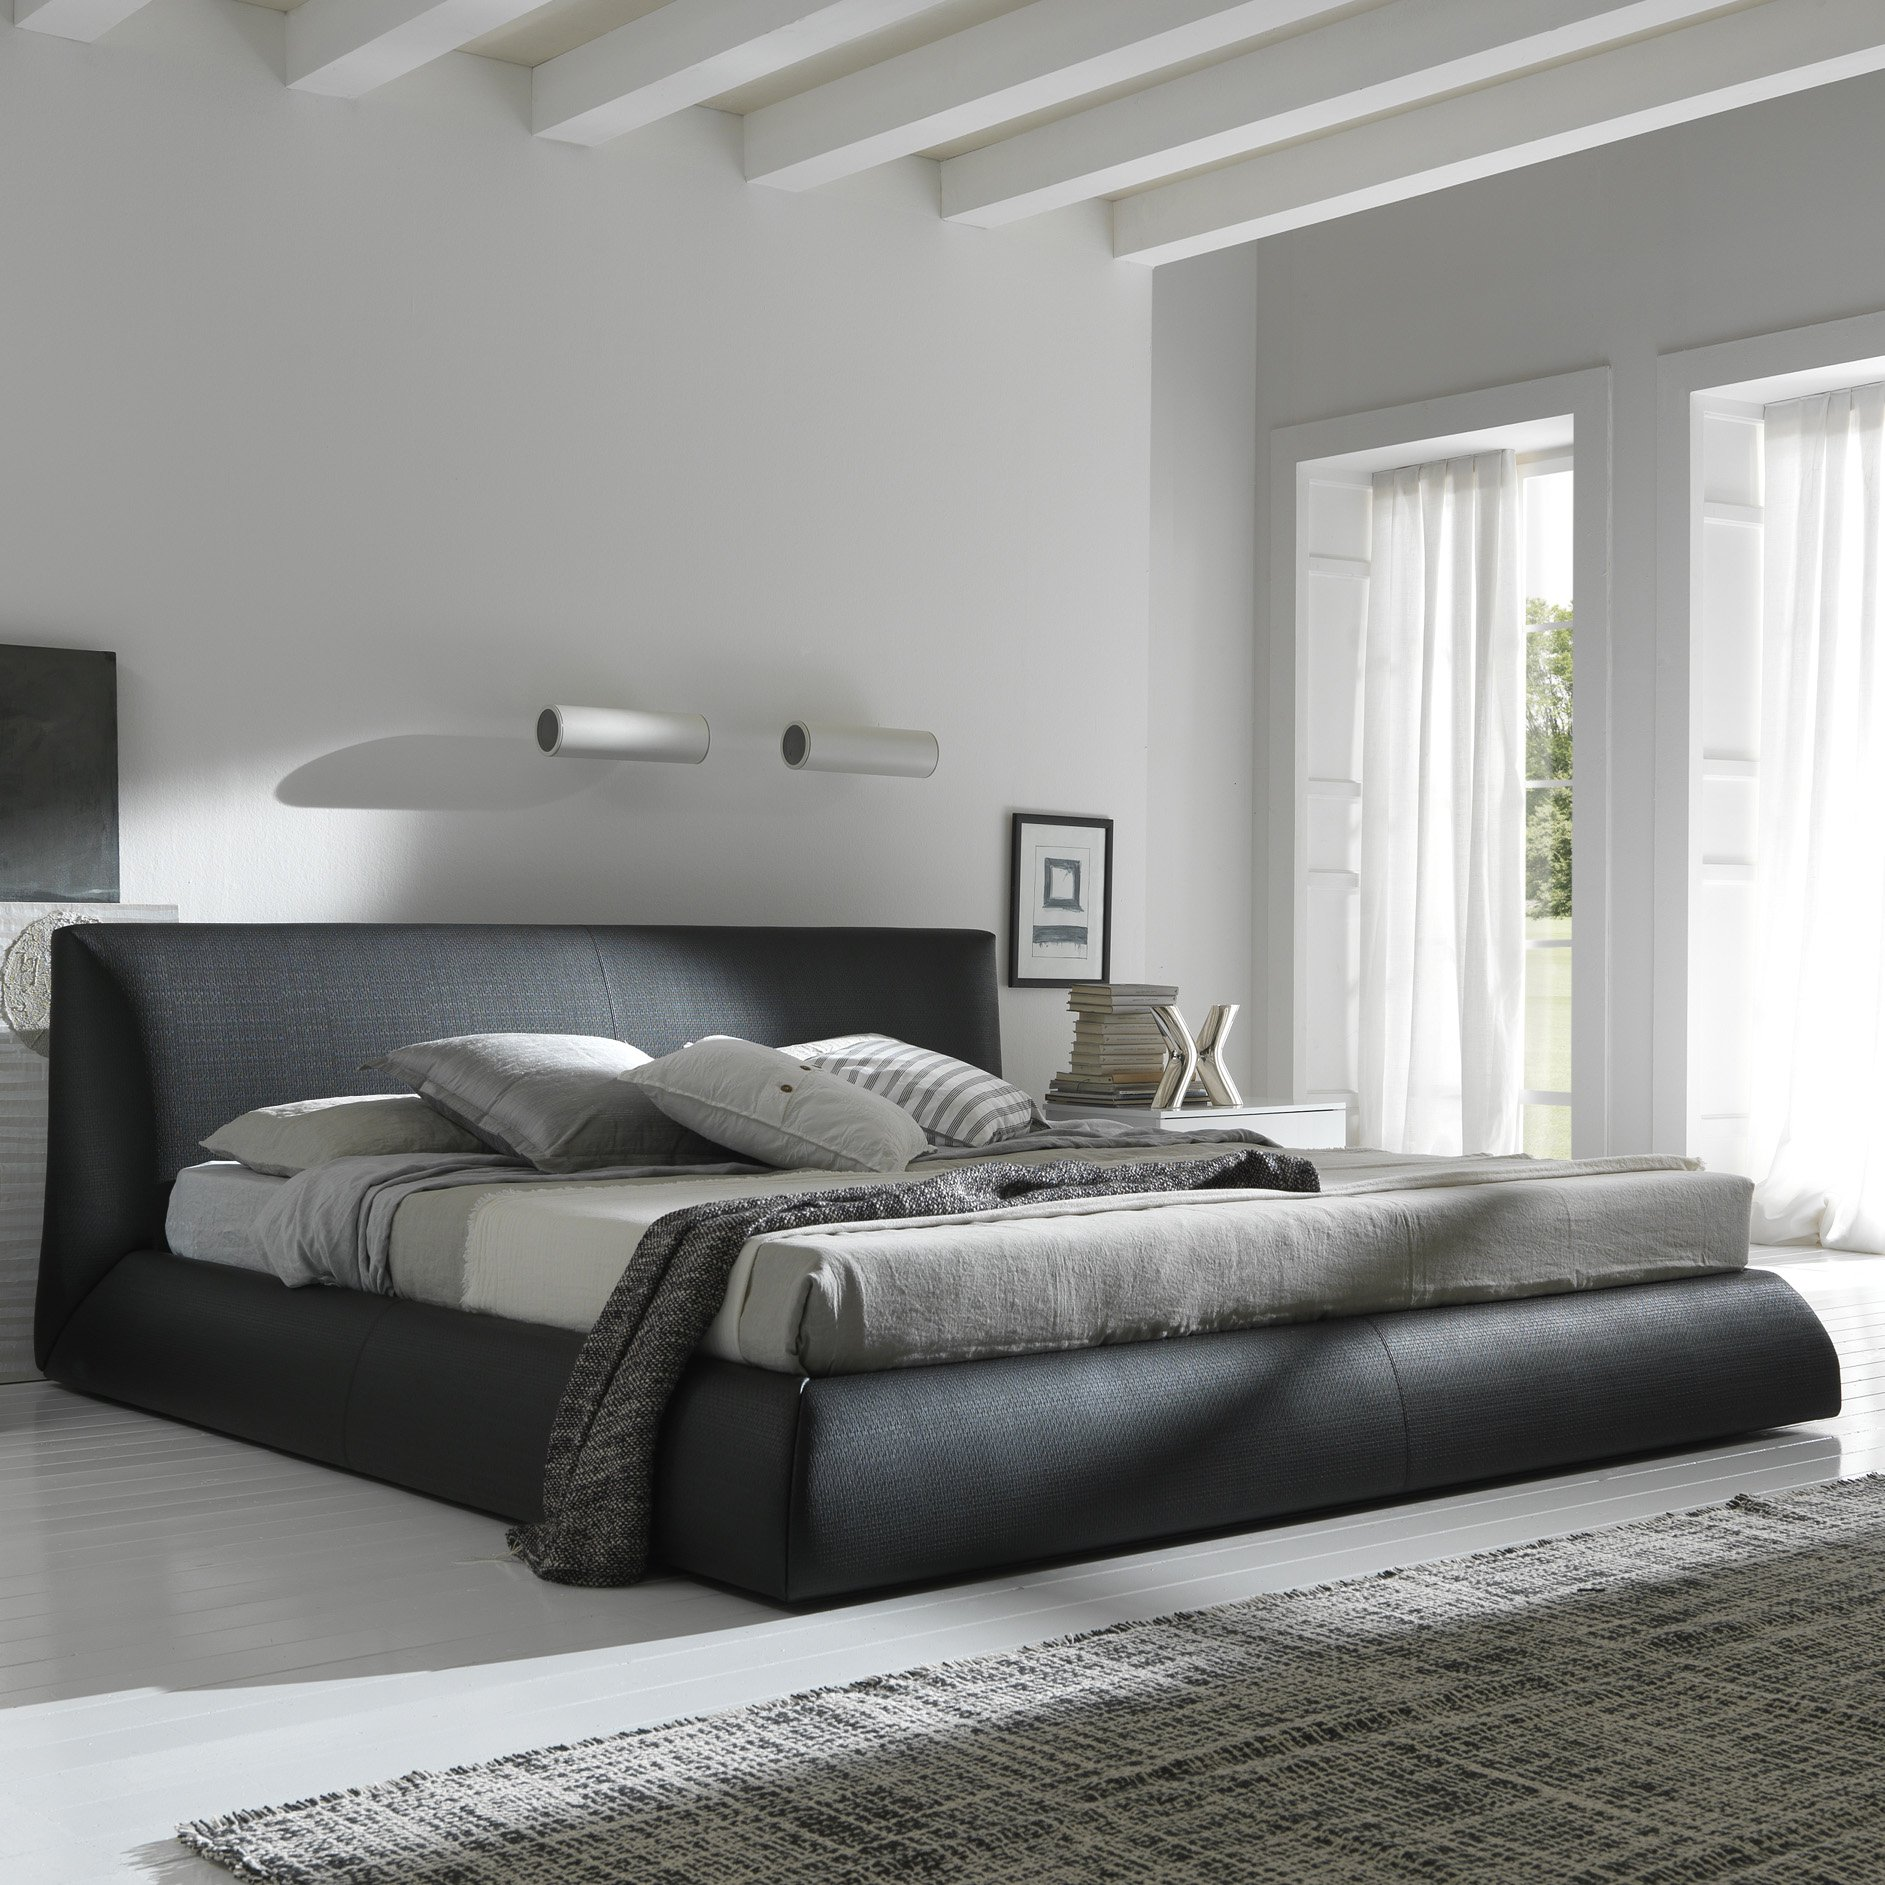 Rossetto Coco Platform Bed Brown by Rossetto USA